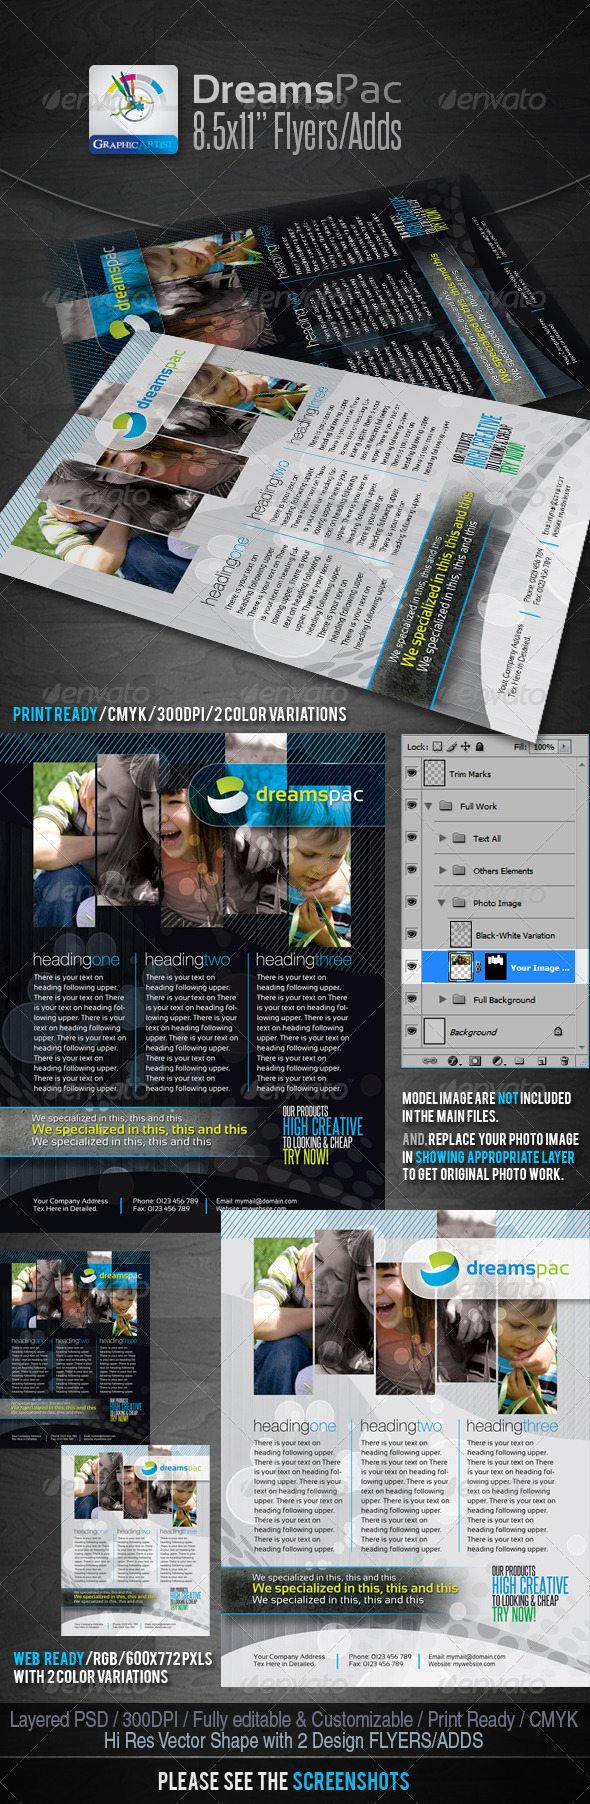 GraphicRiver DreamsPac Flyers Adds For Print Web 1611158